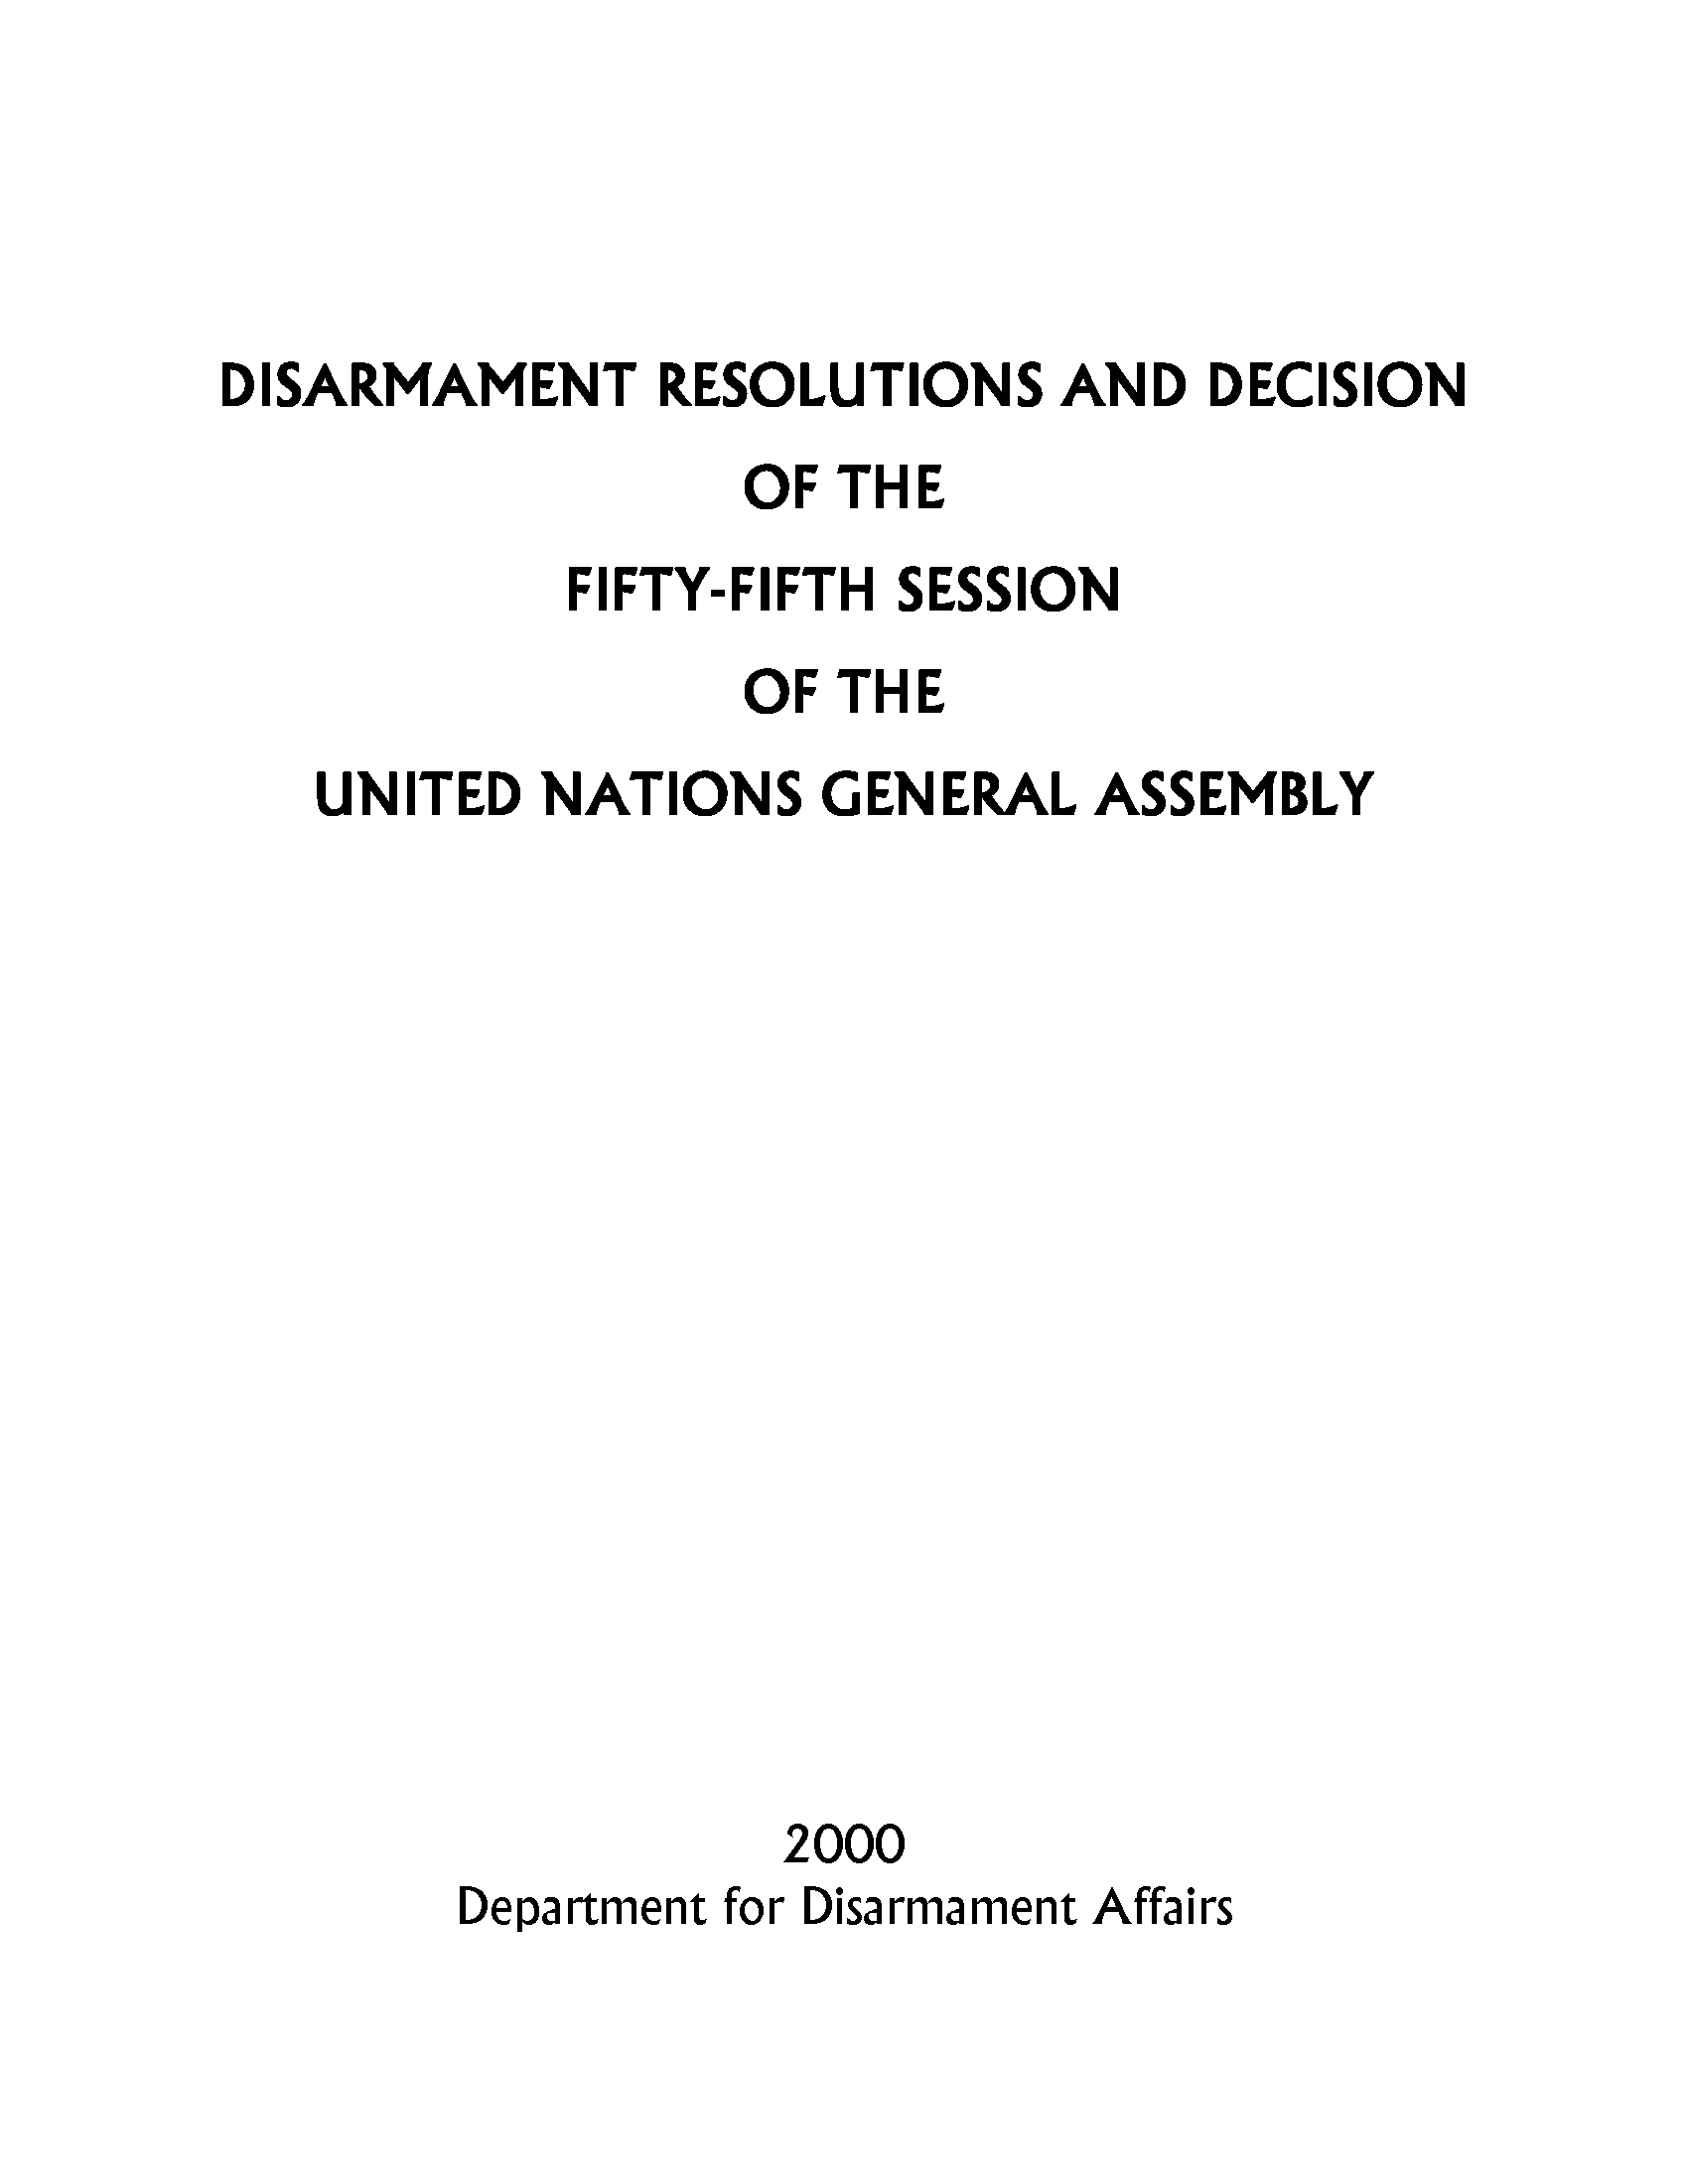 Disarmament Resolutions and Decisions of the Fifty-fifth Session of the United Nations General Assembly, 2000